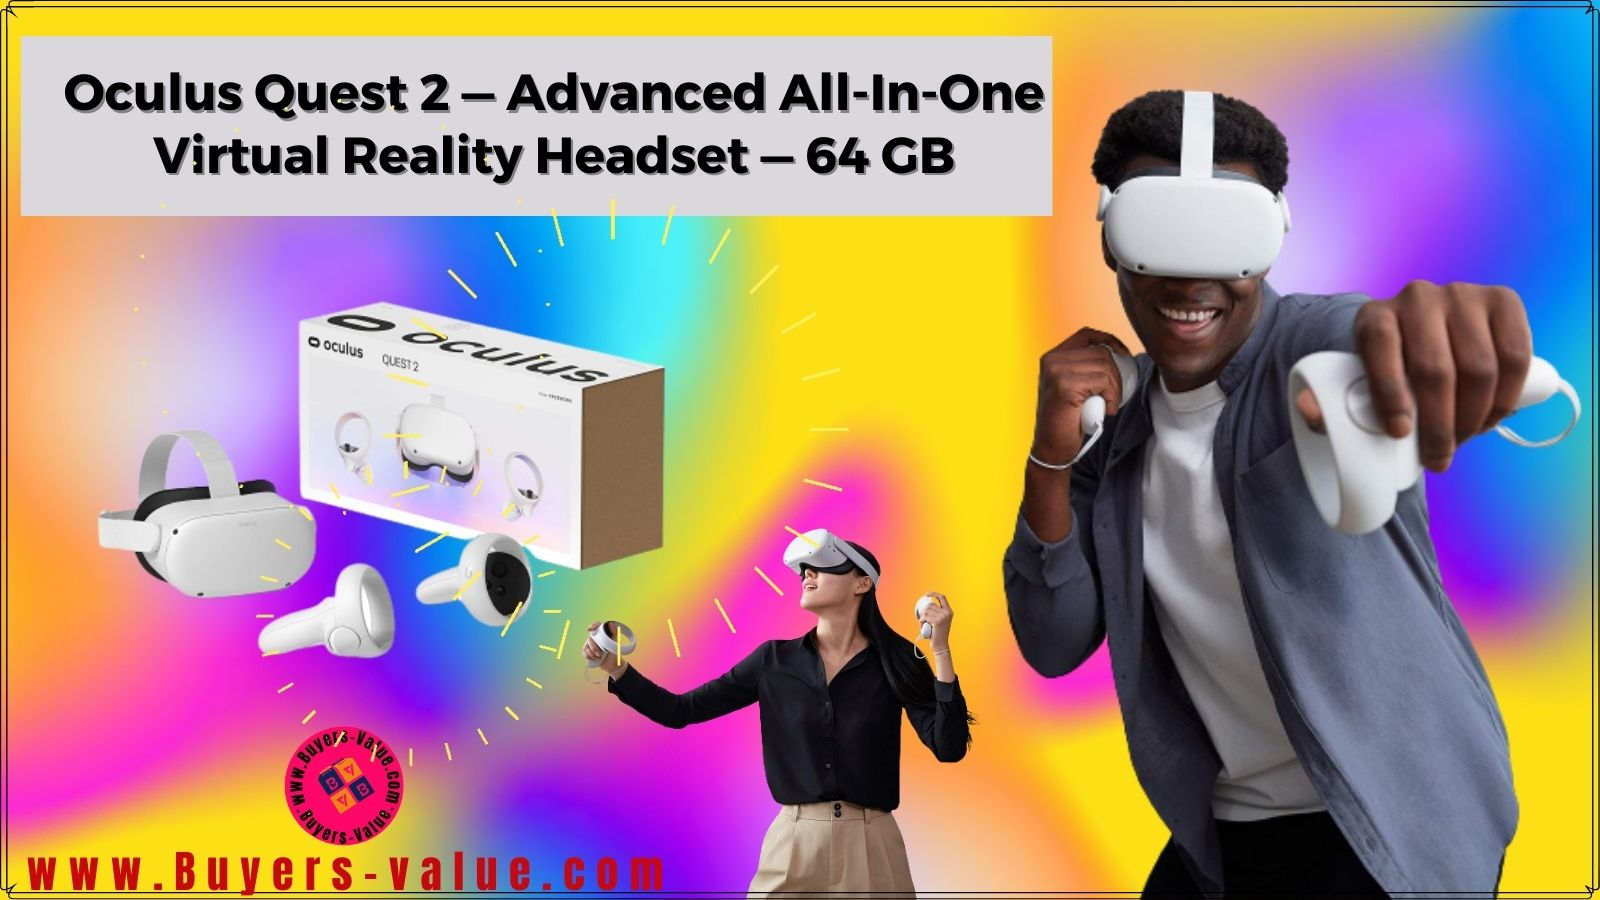 Oculus Quest 2 Headset Specification